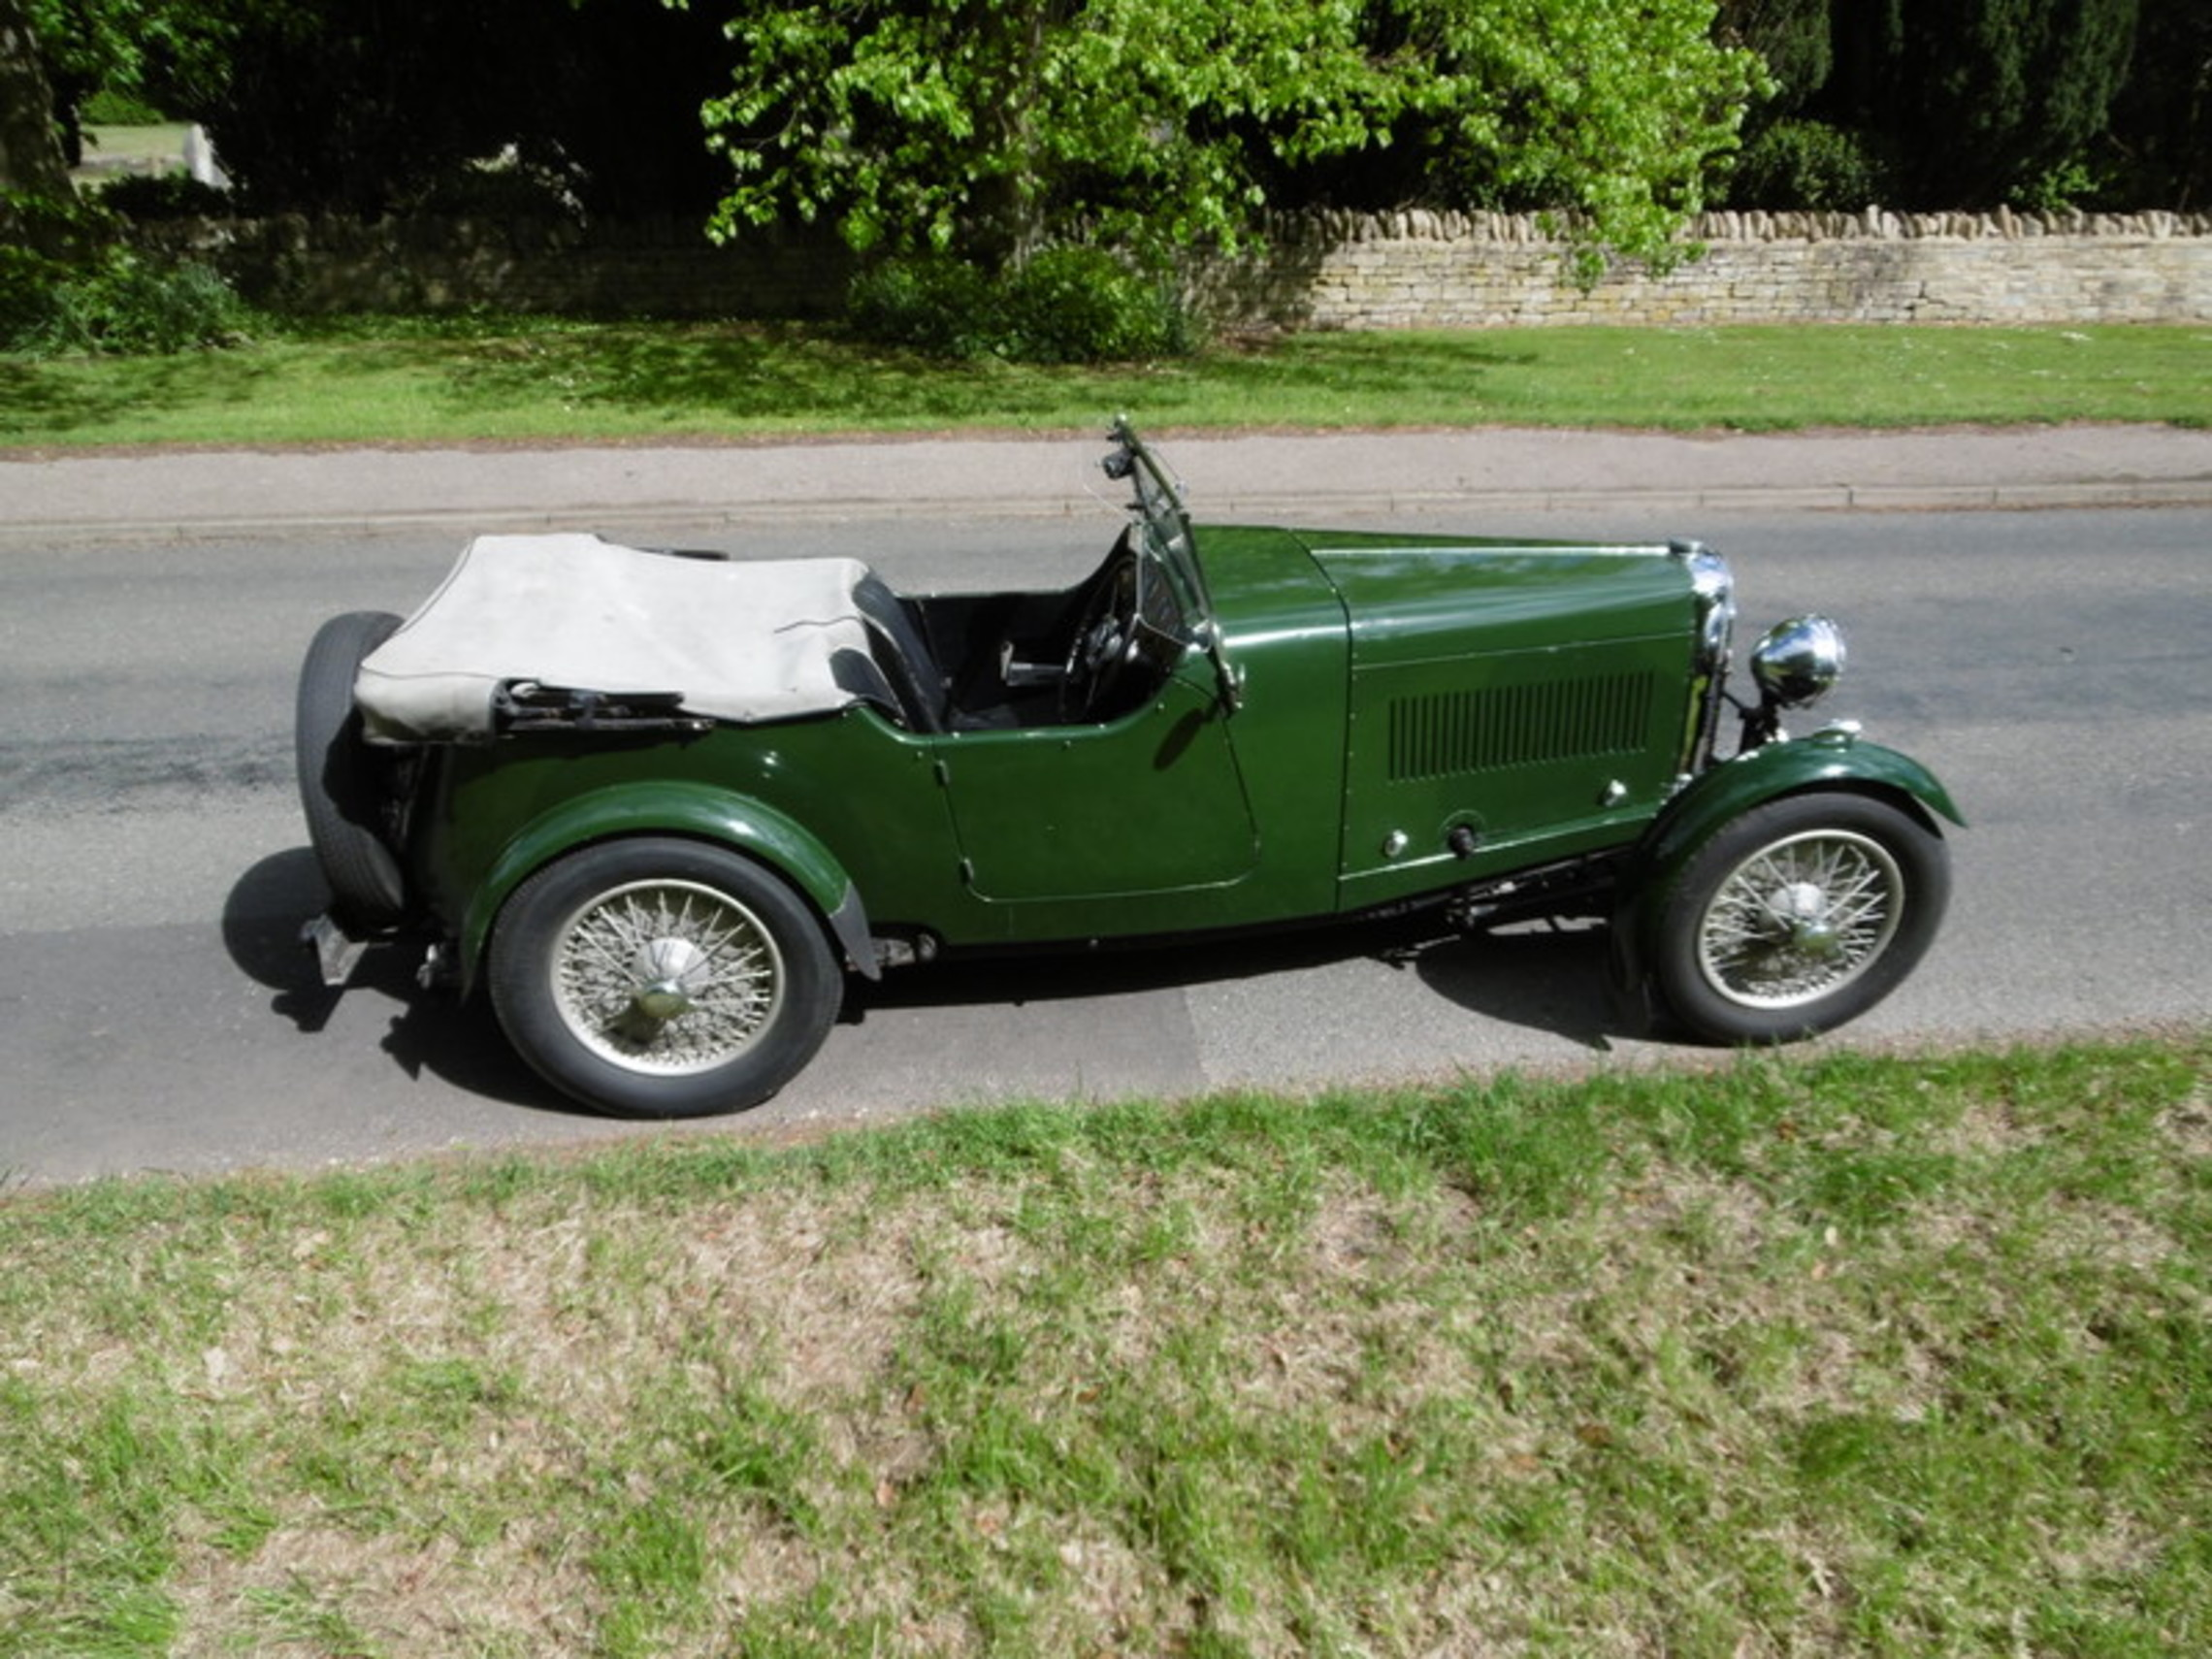 1933 1 ½ litre 12/50 short chassis